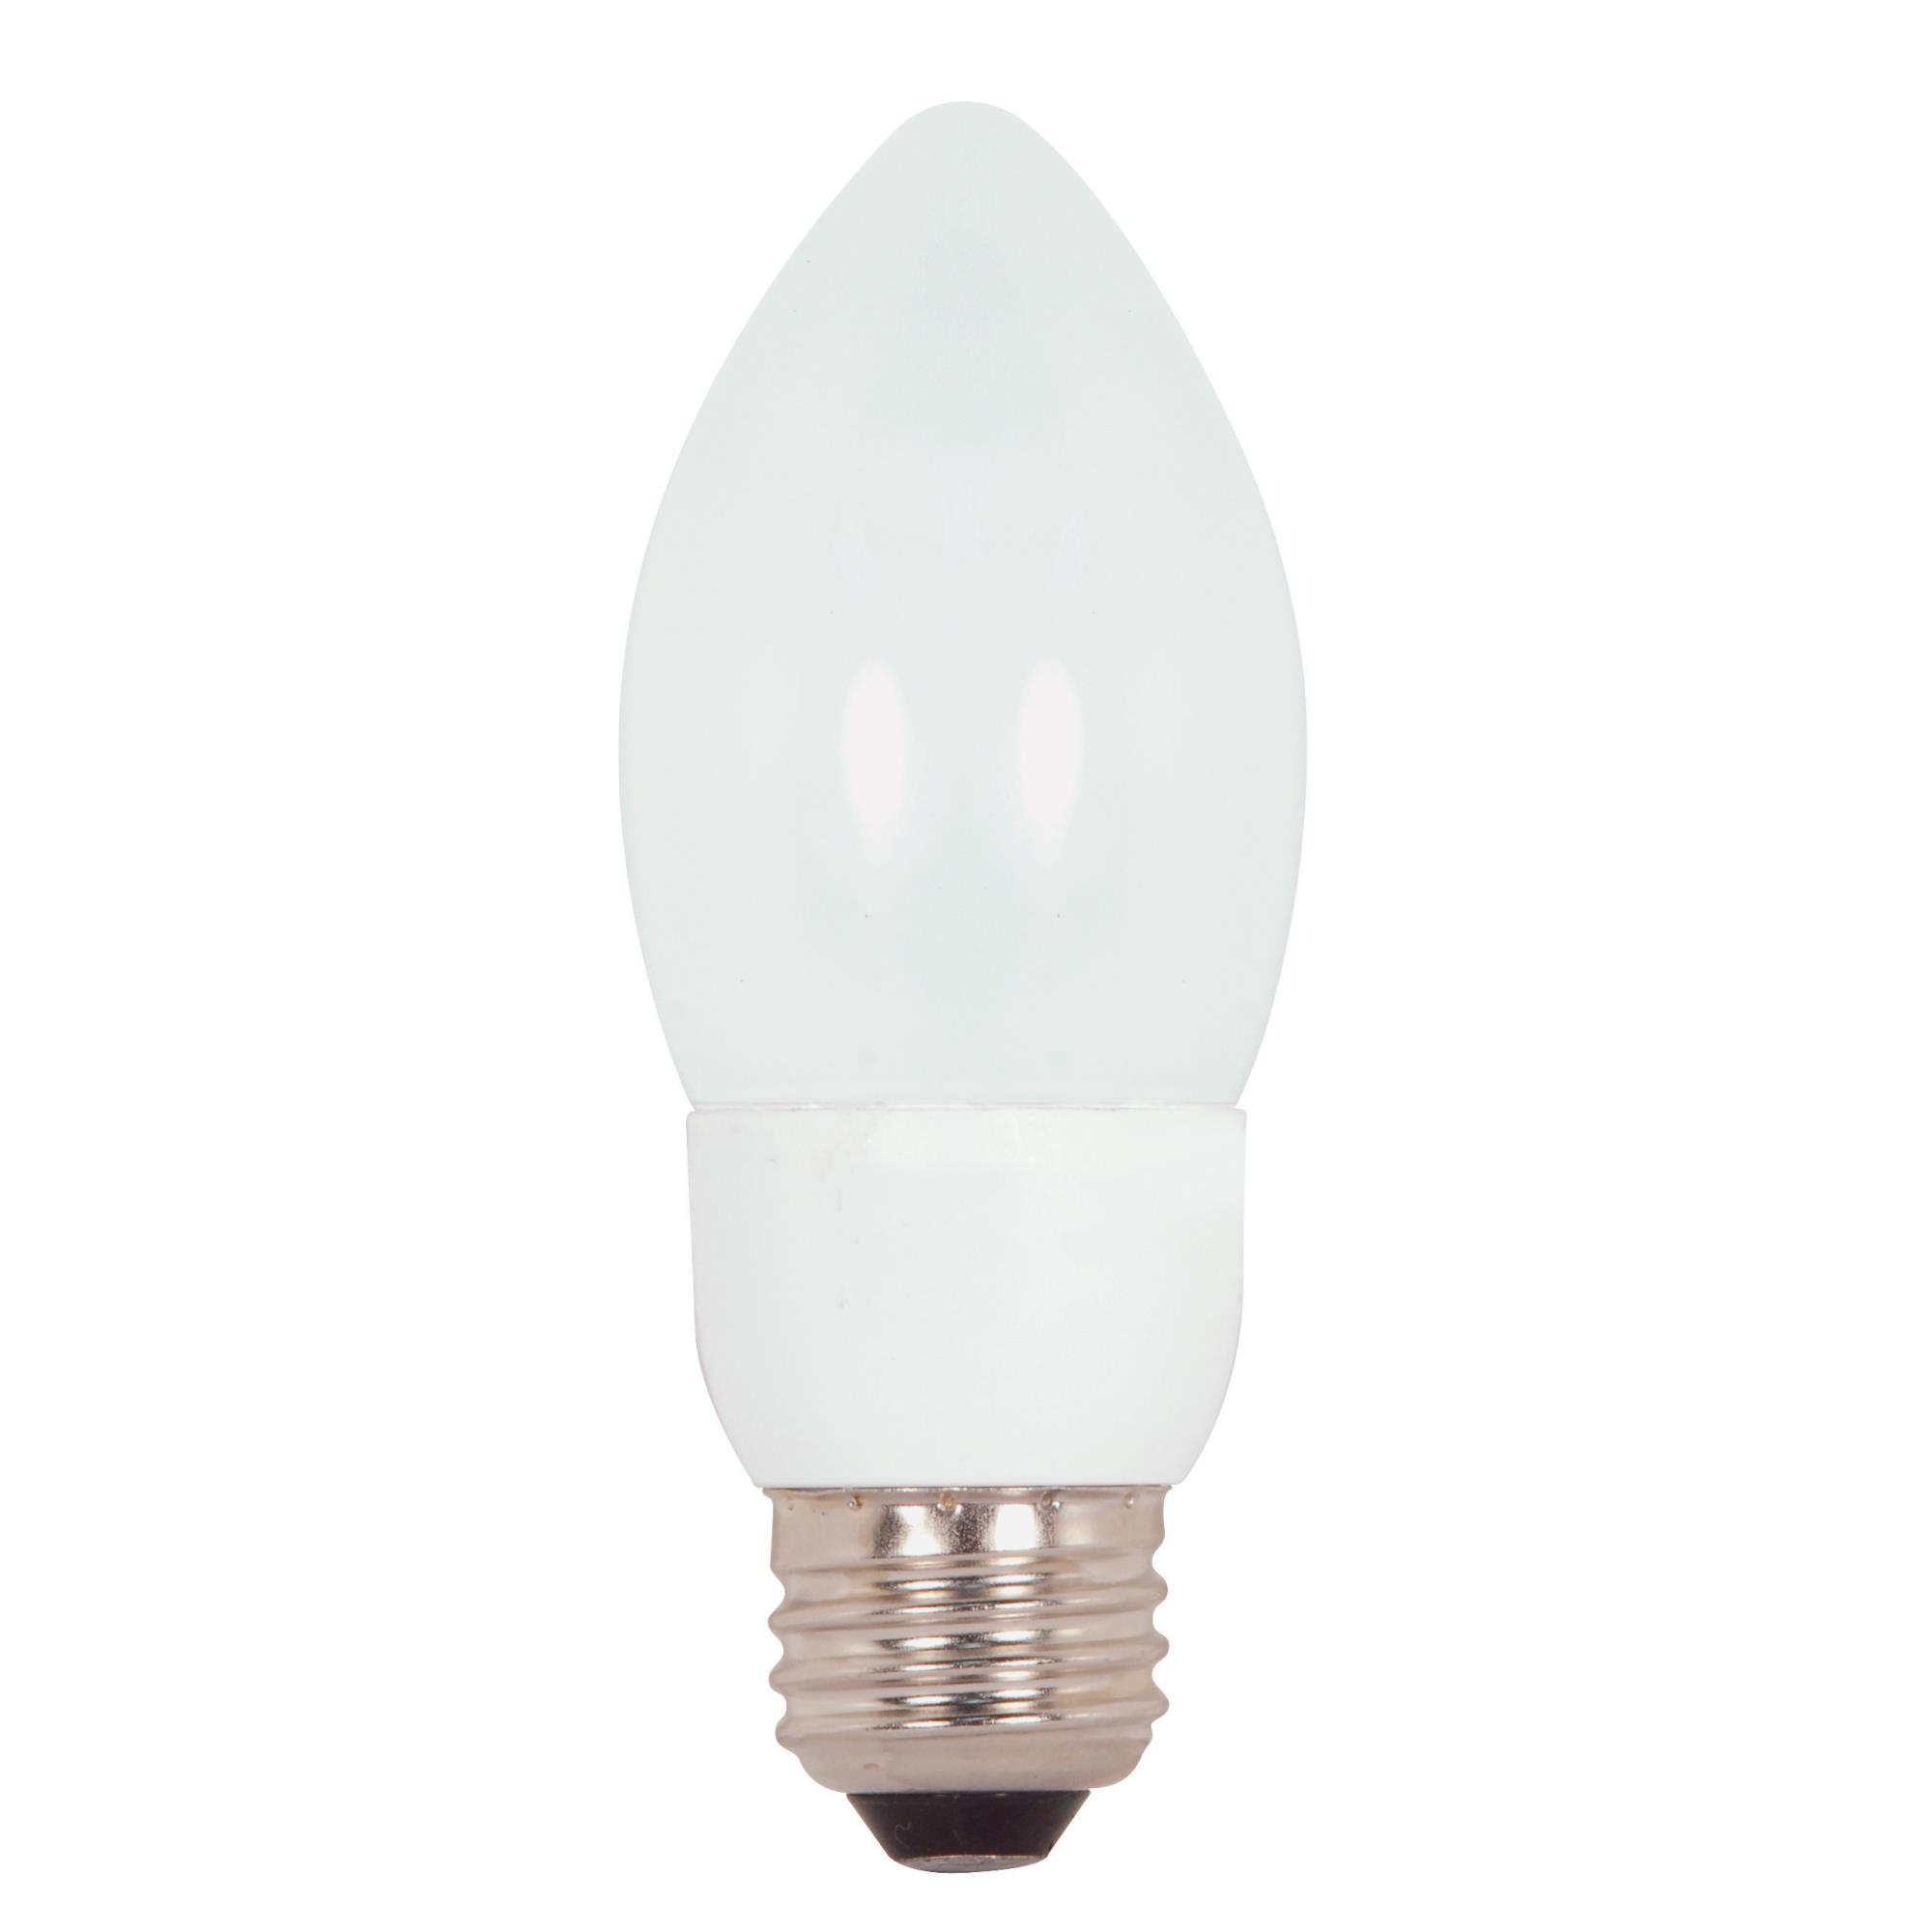 7 Watt 2700K Compact Fluorescent Light Bulb